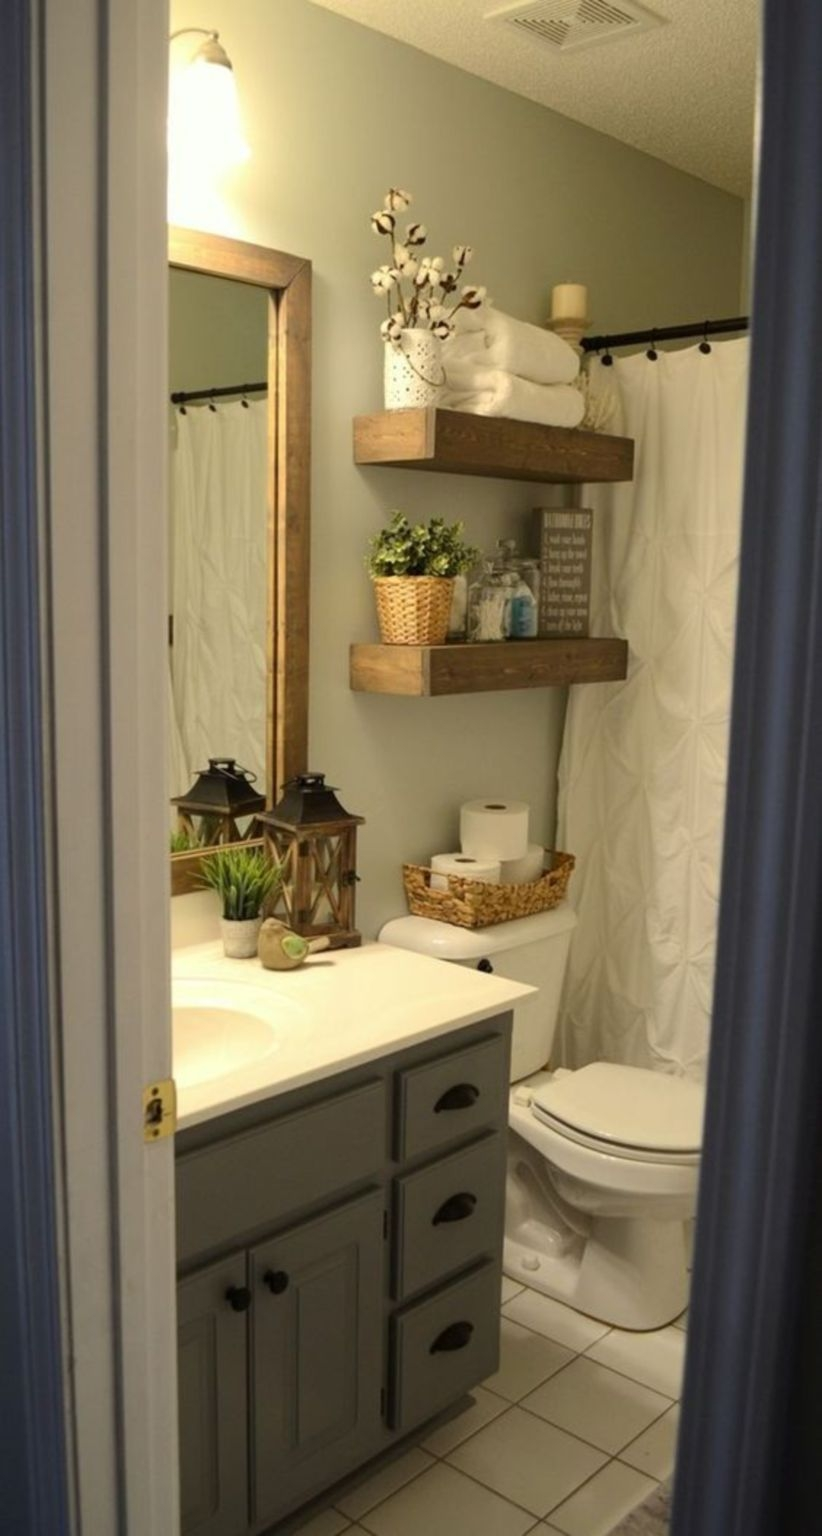 17 Beautiful and Modern Farmhouse Bathroom Design Ideas ... on Farmhouse Bathroom Ideas  id=93240